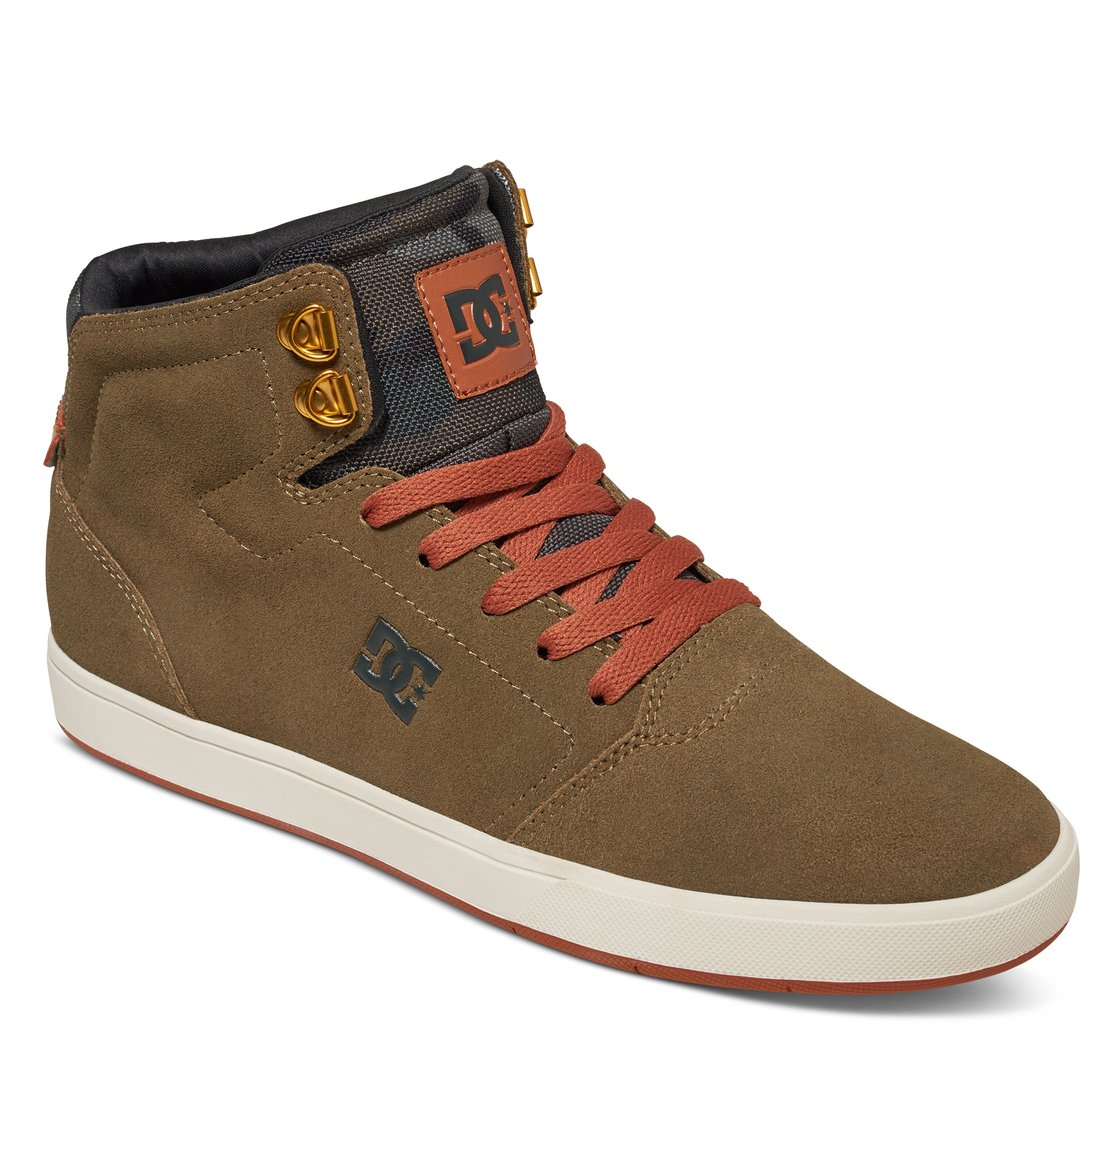 dc shoes crisis high top shoes chaussures montantes. Black Bedroom Furniture Sets. Home Design Ideas